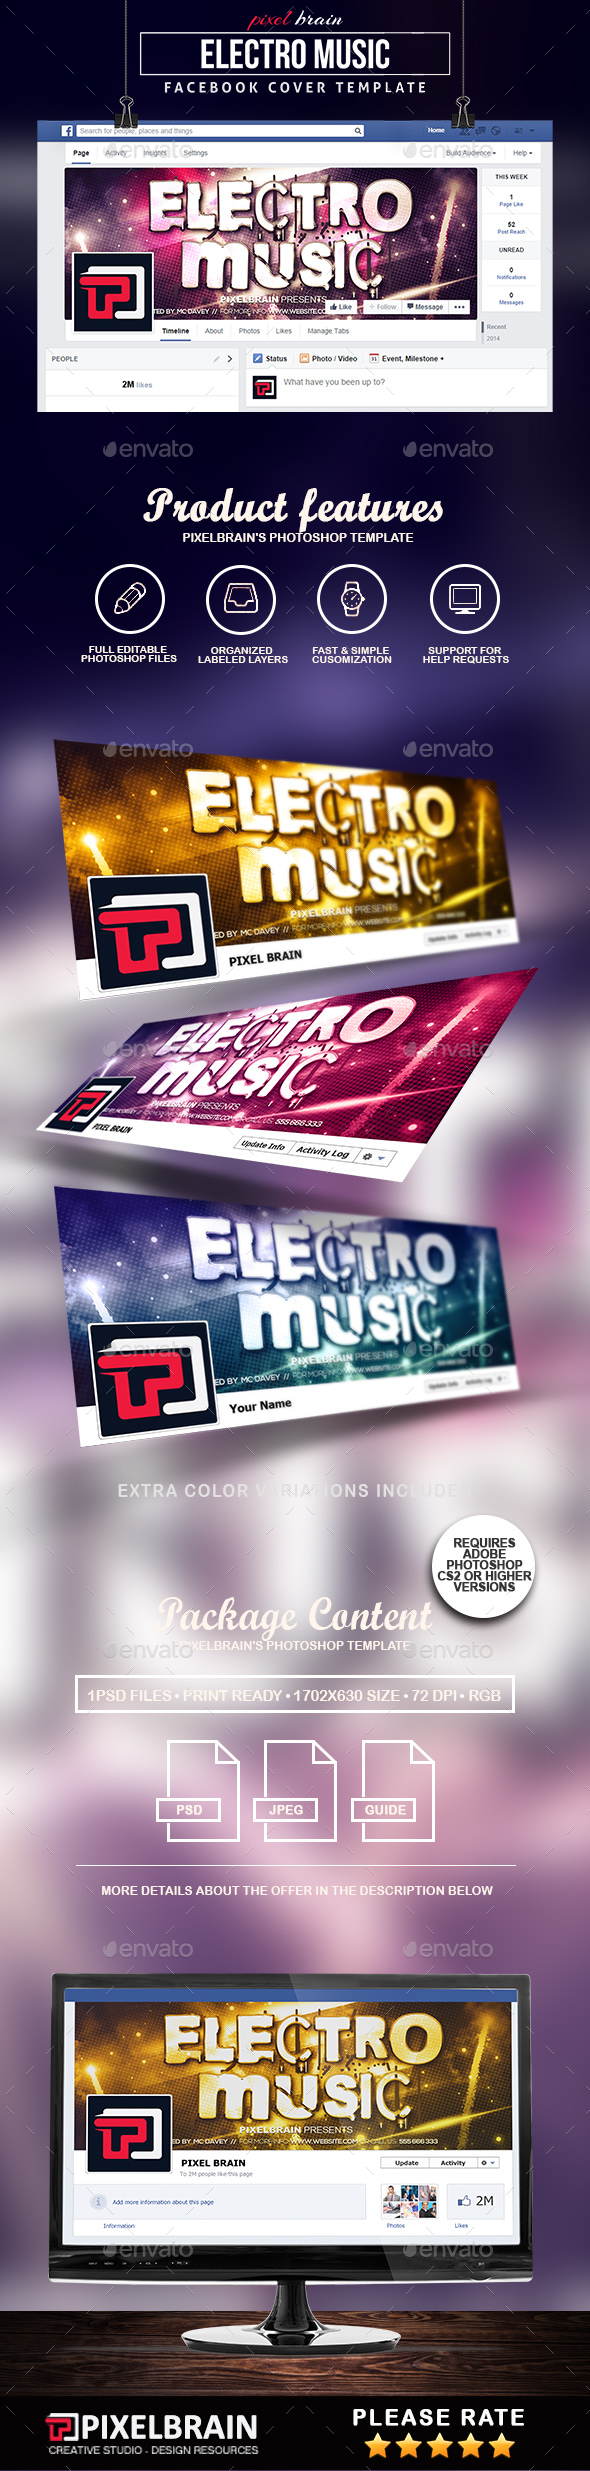 Electro Music Facebook Cover Template - Facebook Timeline Covers Social Media